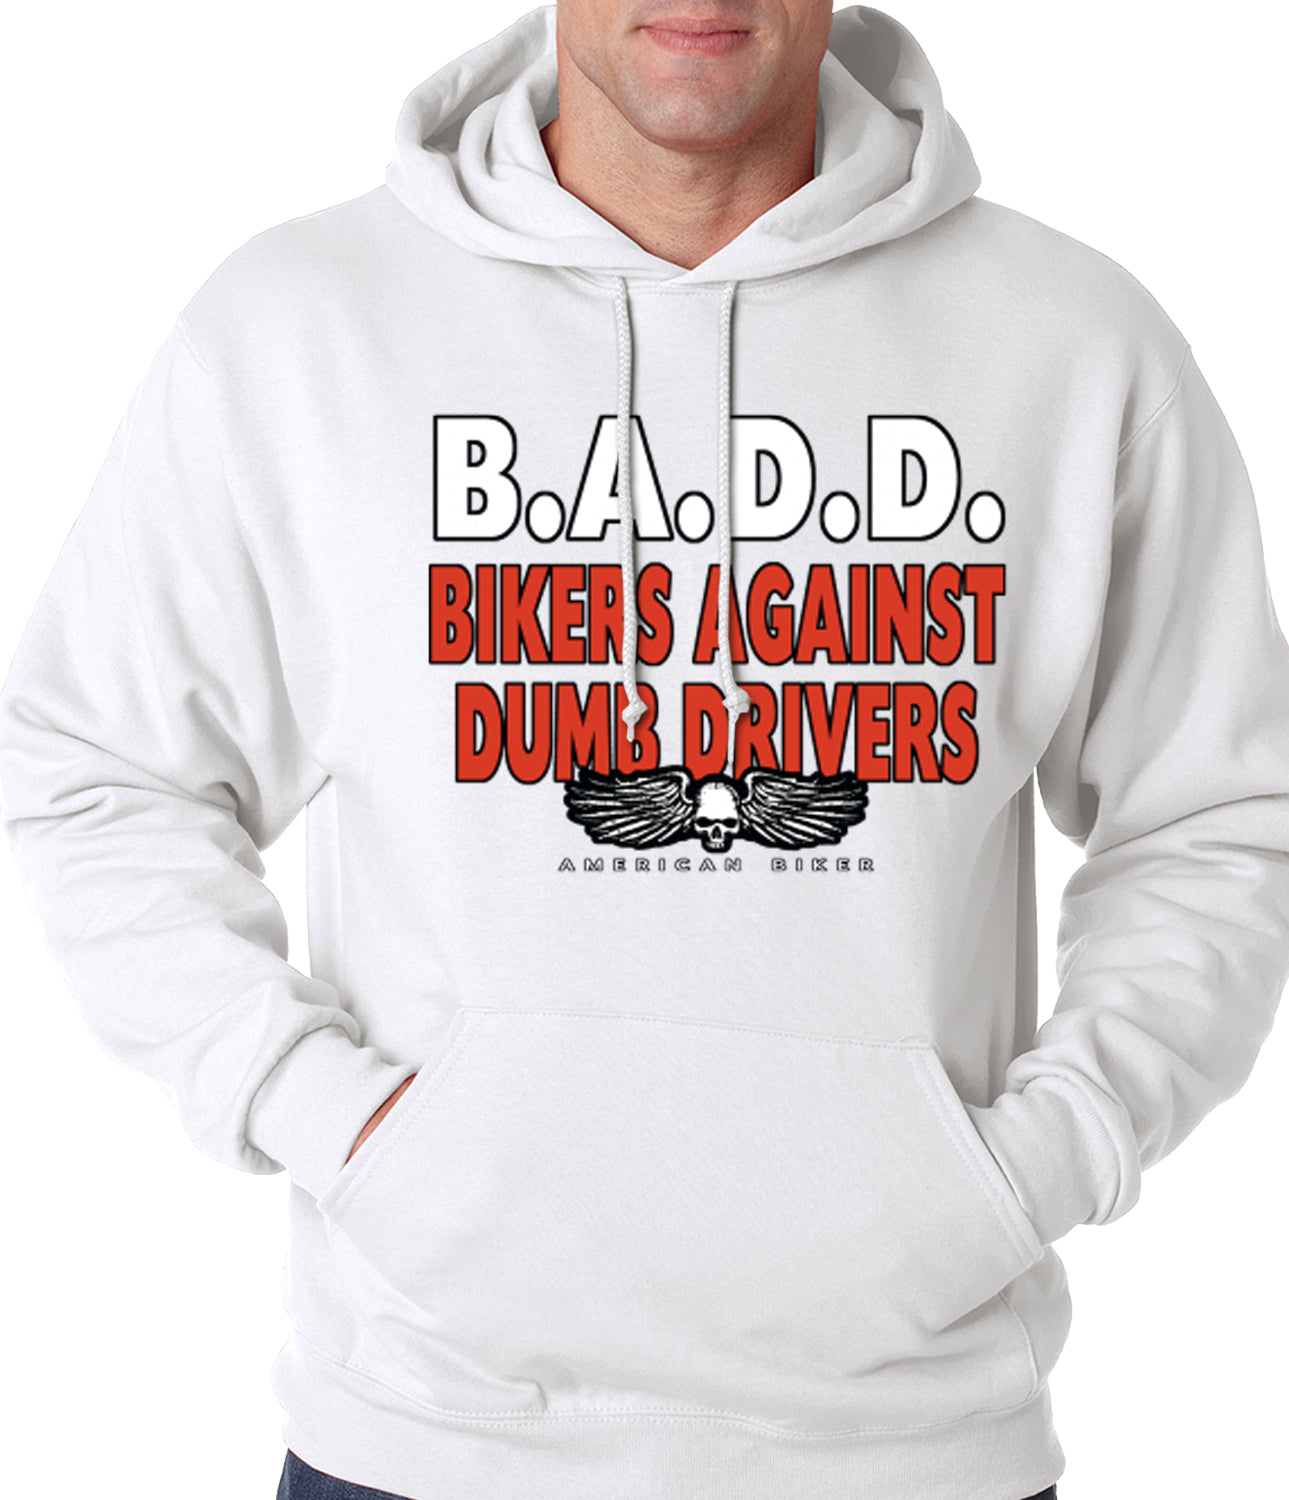 Bikers Against Dumb Drivers Hoodie White